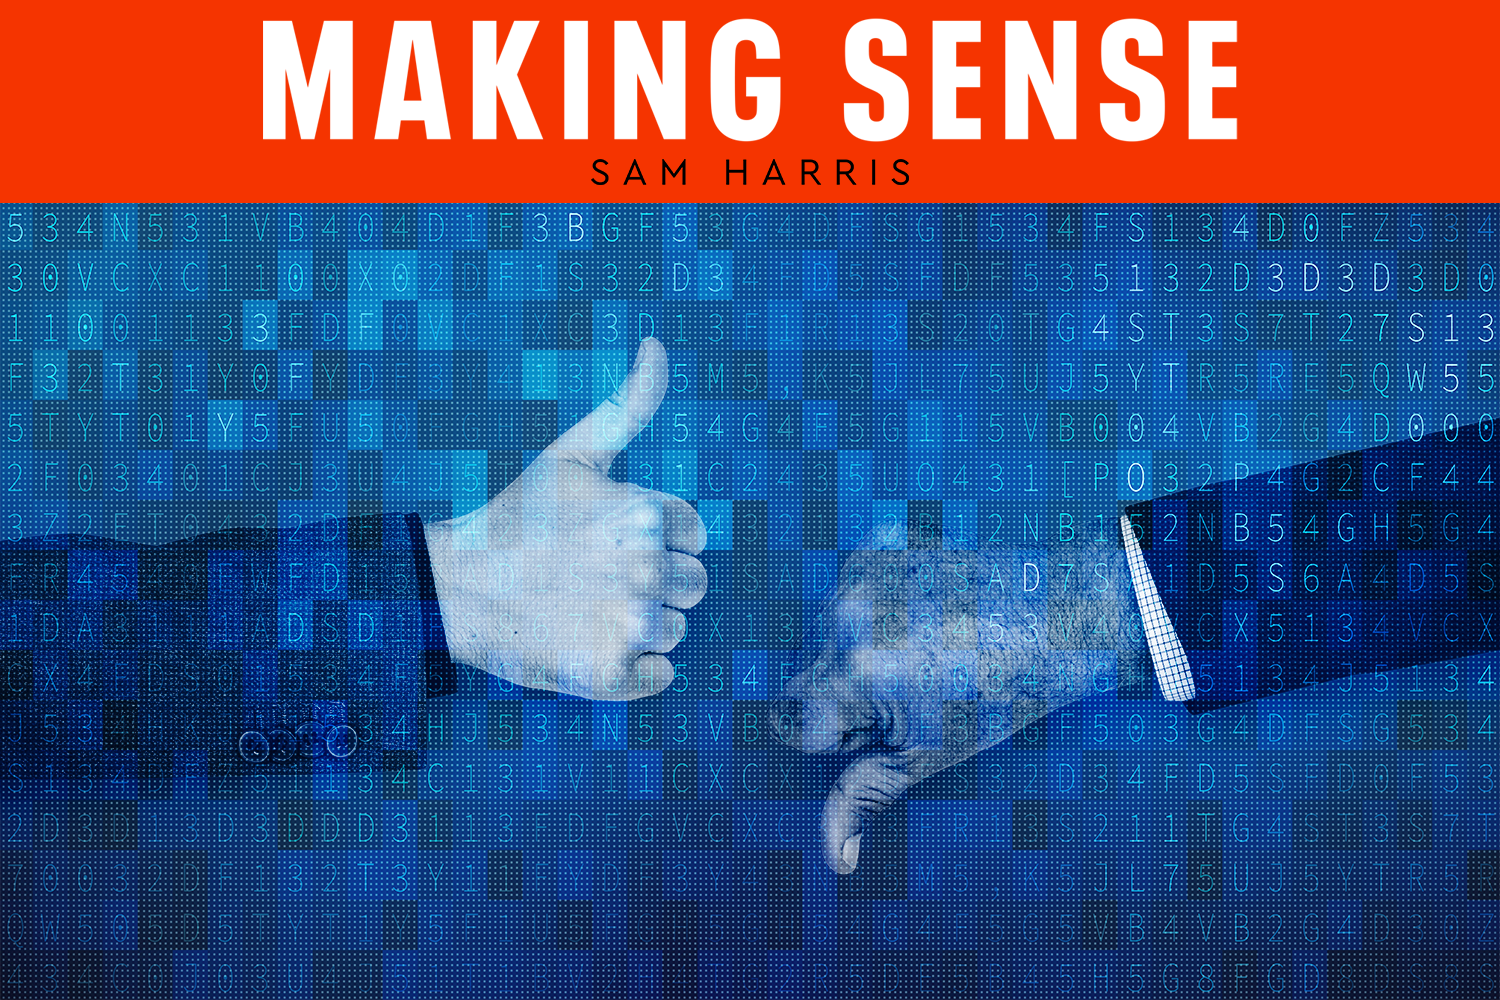 Making Sense Podcast #152 - The Trouble with Facebook   Sam